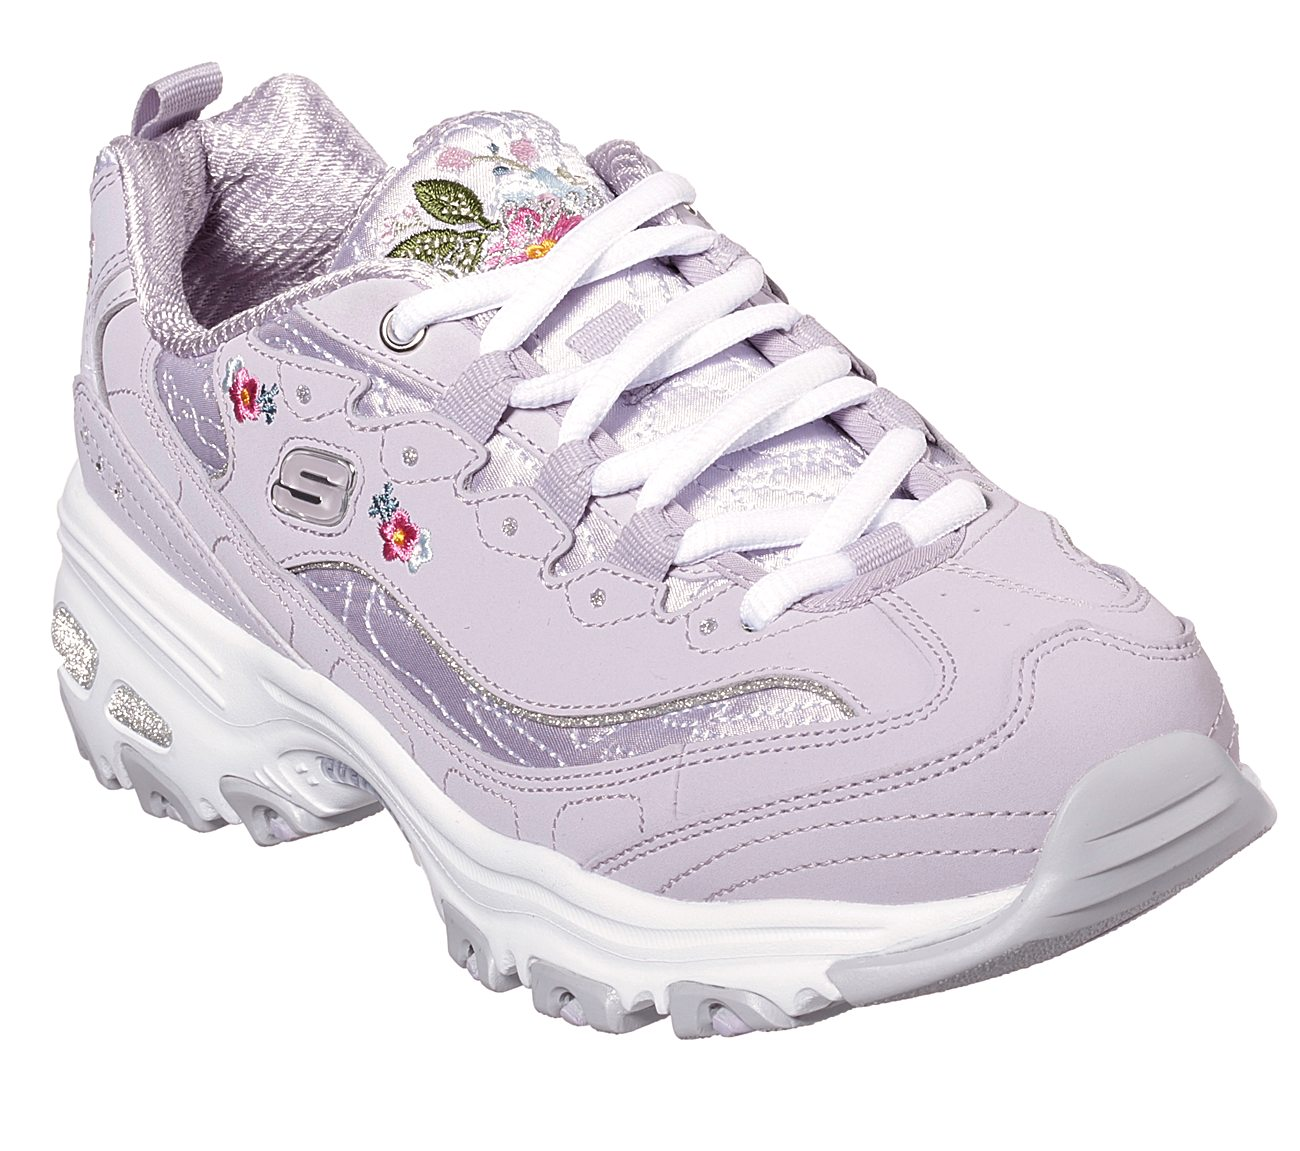 Buy SKECHERS D Lites - Bright Blossoms D Lites Shoes only  70.00 475ada3e5442